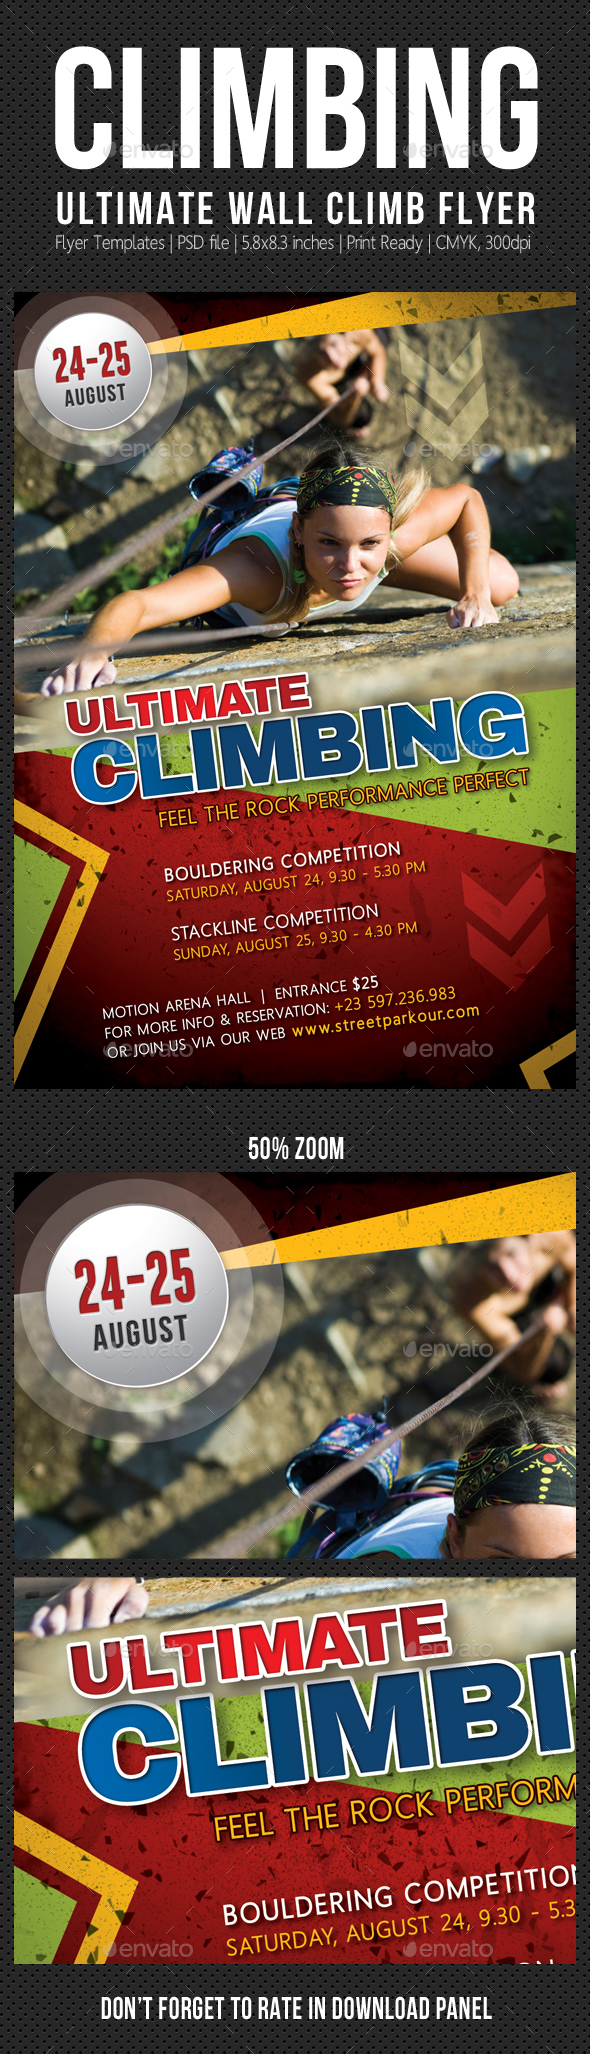 Climbing Sport Activity Flyer - Sports Events